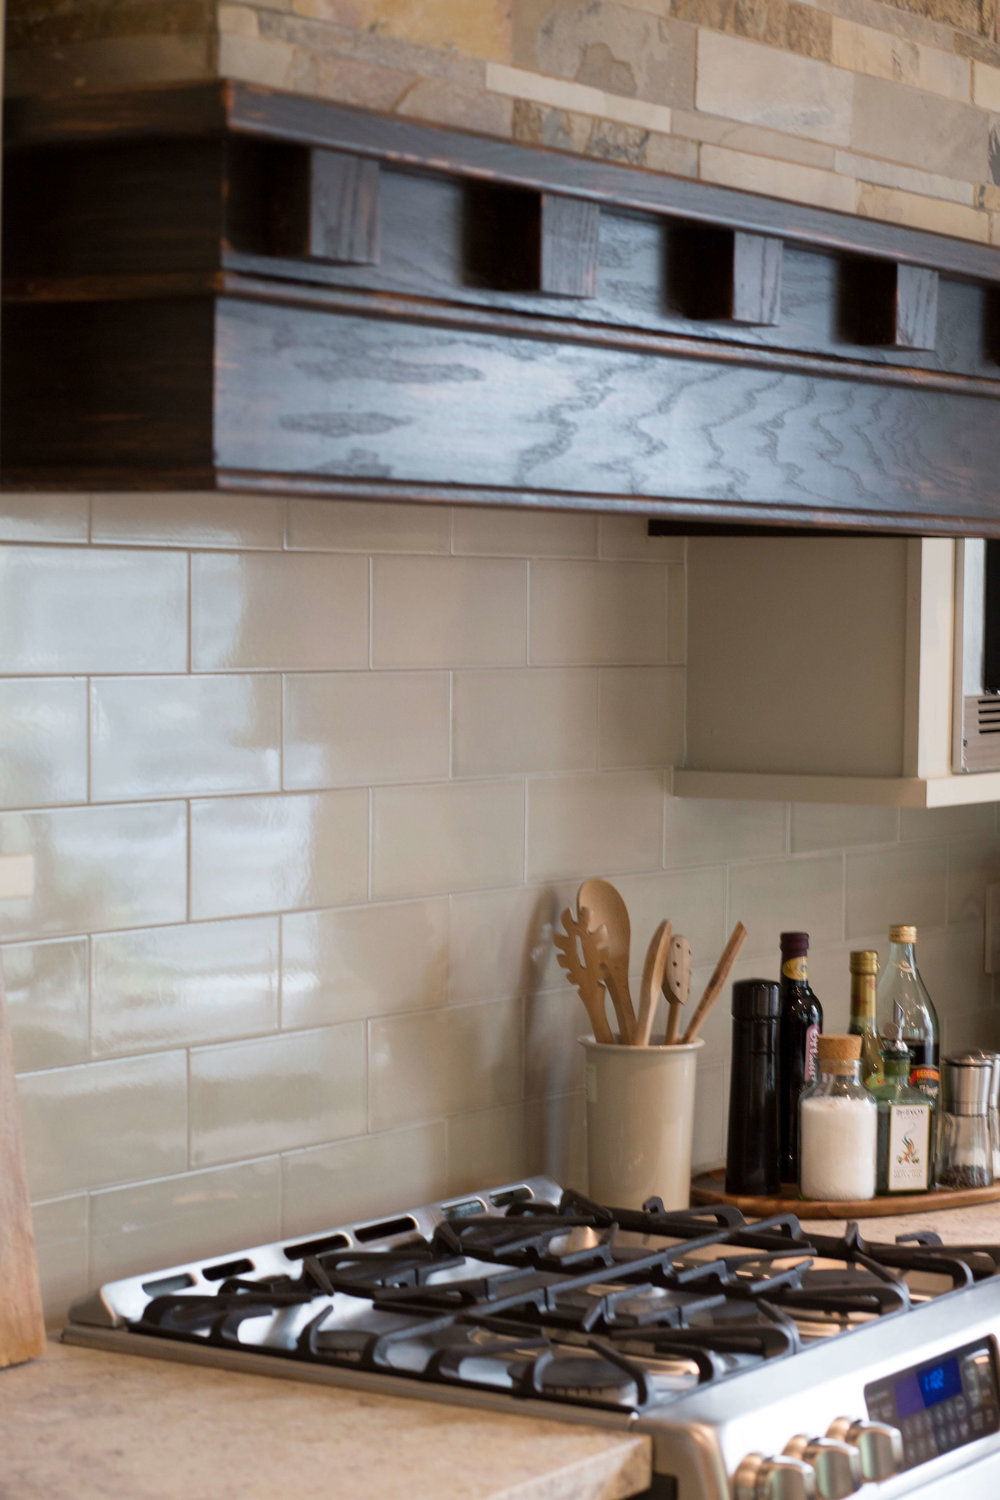 Simple large scale ceramic subway tile with honed granite countertops | Designer: Carla Aston, Photographer: Tori Aston #subwaytile #granitecountertops